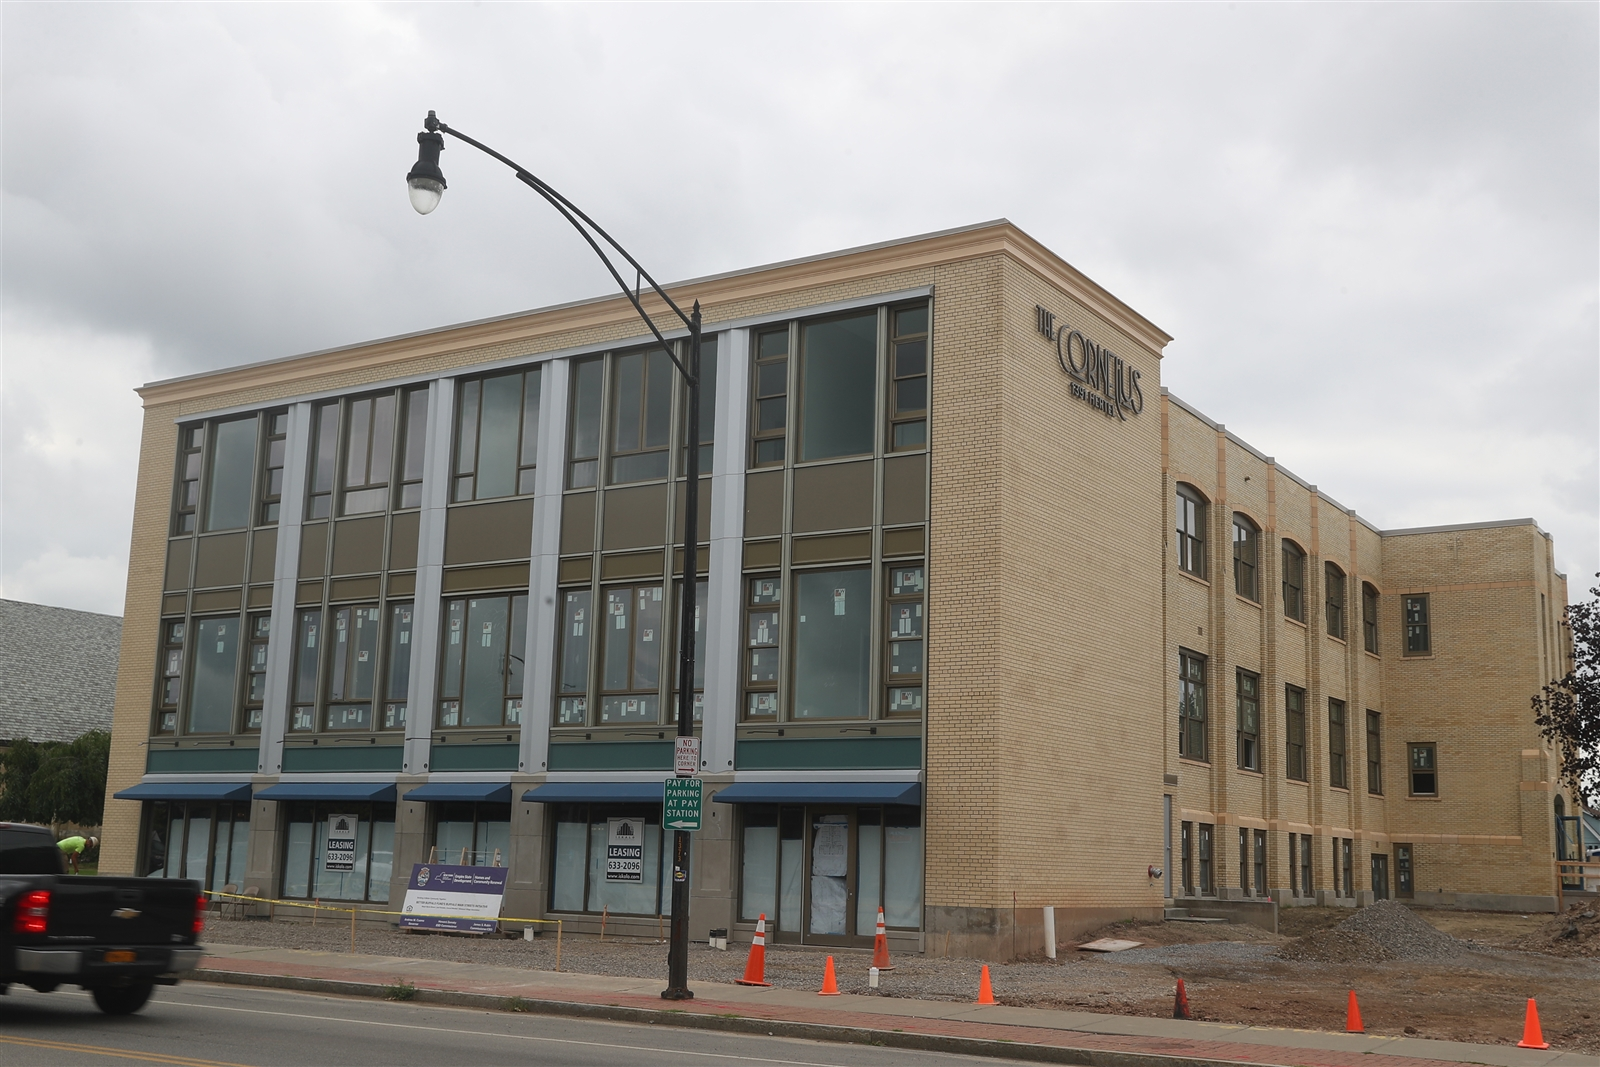 St. Margaret's Elementary School, which closed in 2012, is being converted into 23 one- and two-bedroom market-rate apartments and 2,000-square foot of commercial space.